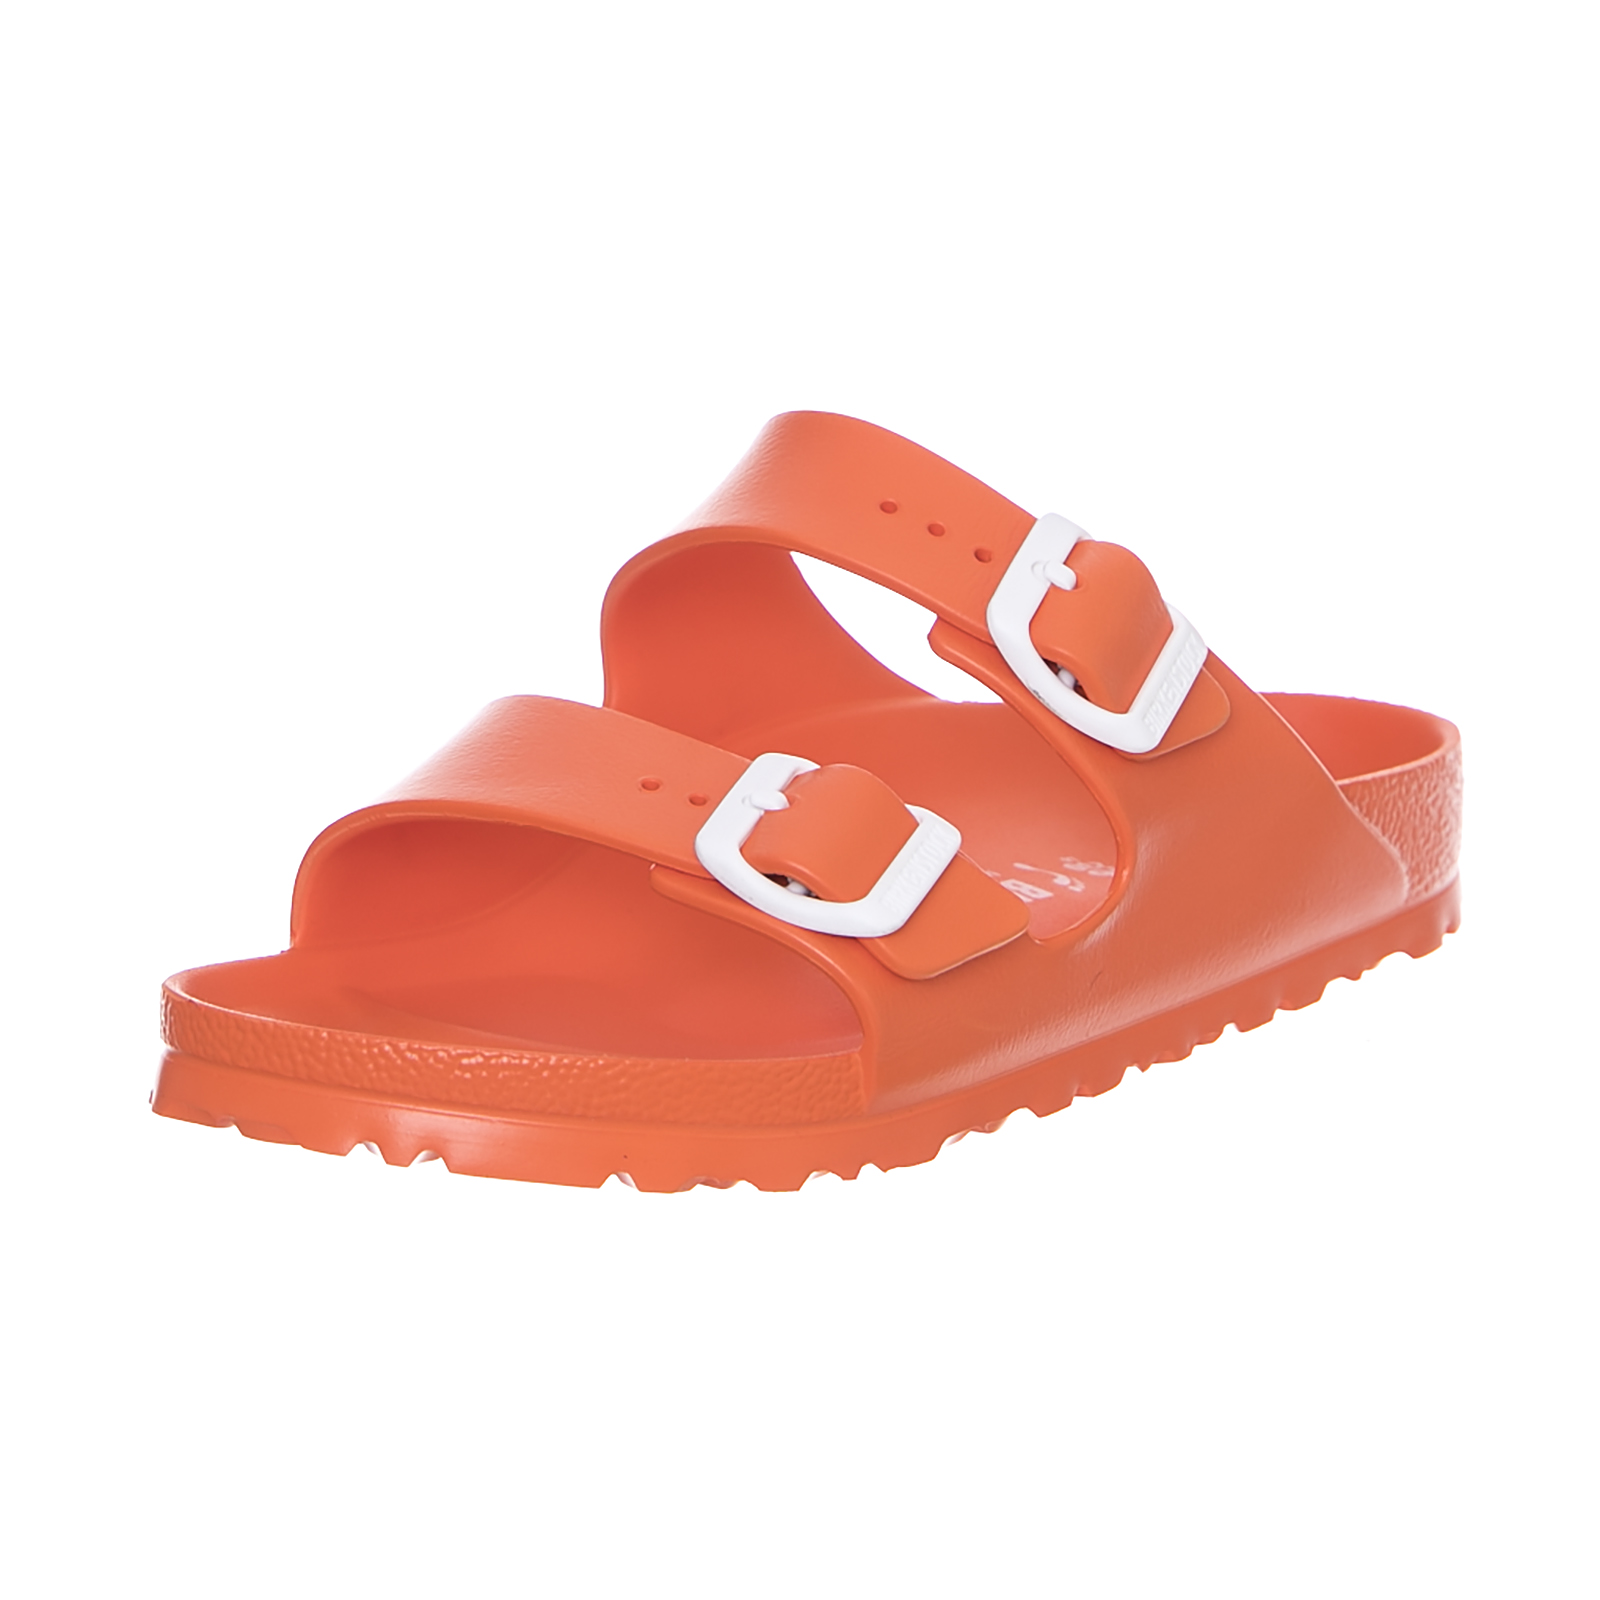 be553476827c4 Birkenstock Sandals Arizona Eva Scuba Coral Narrow Fit Orange